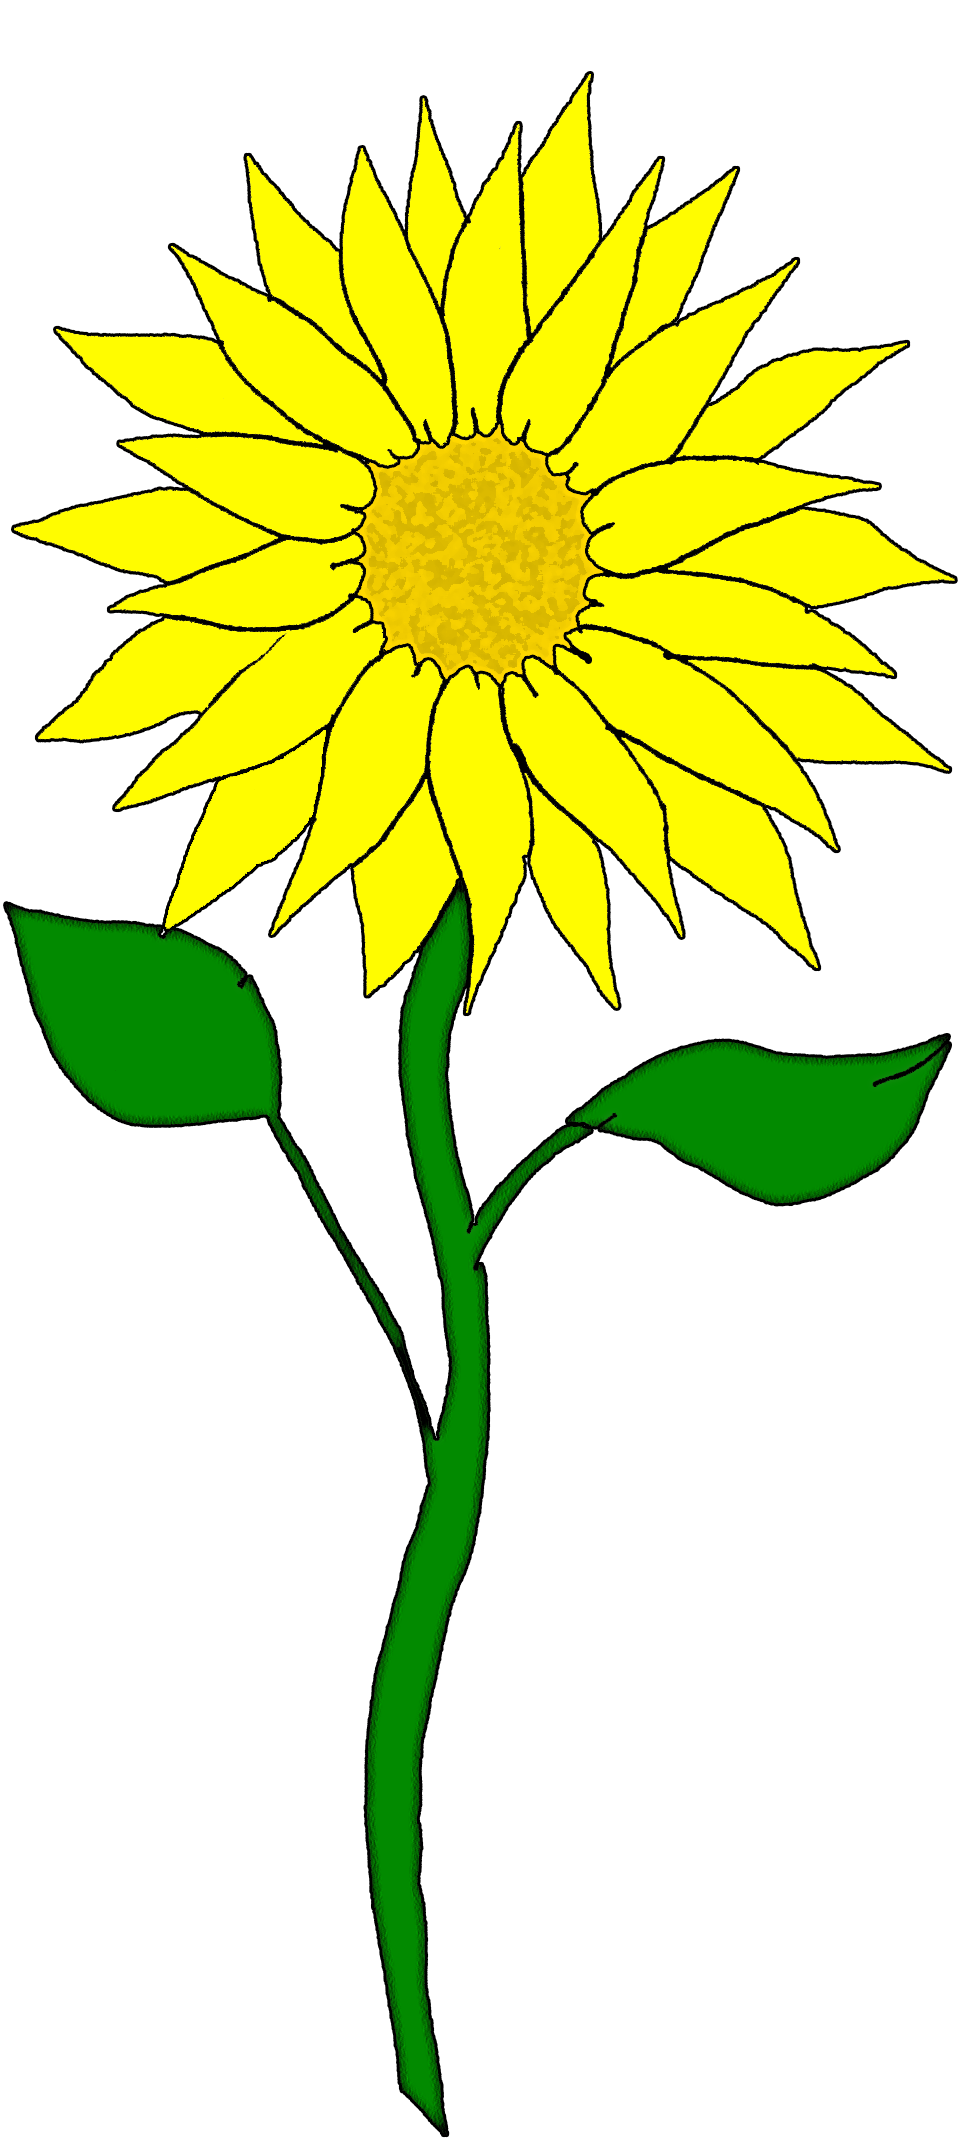 Sun and plant clipart for girl scout shirts clip royalty free library Free Flower Clipart | Flowers--clipart | Pinterest | Flower clipart clip royalty free library